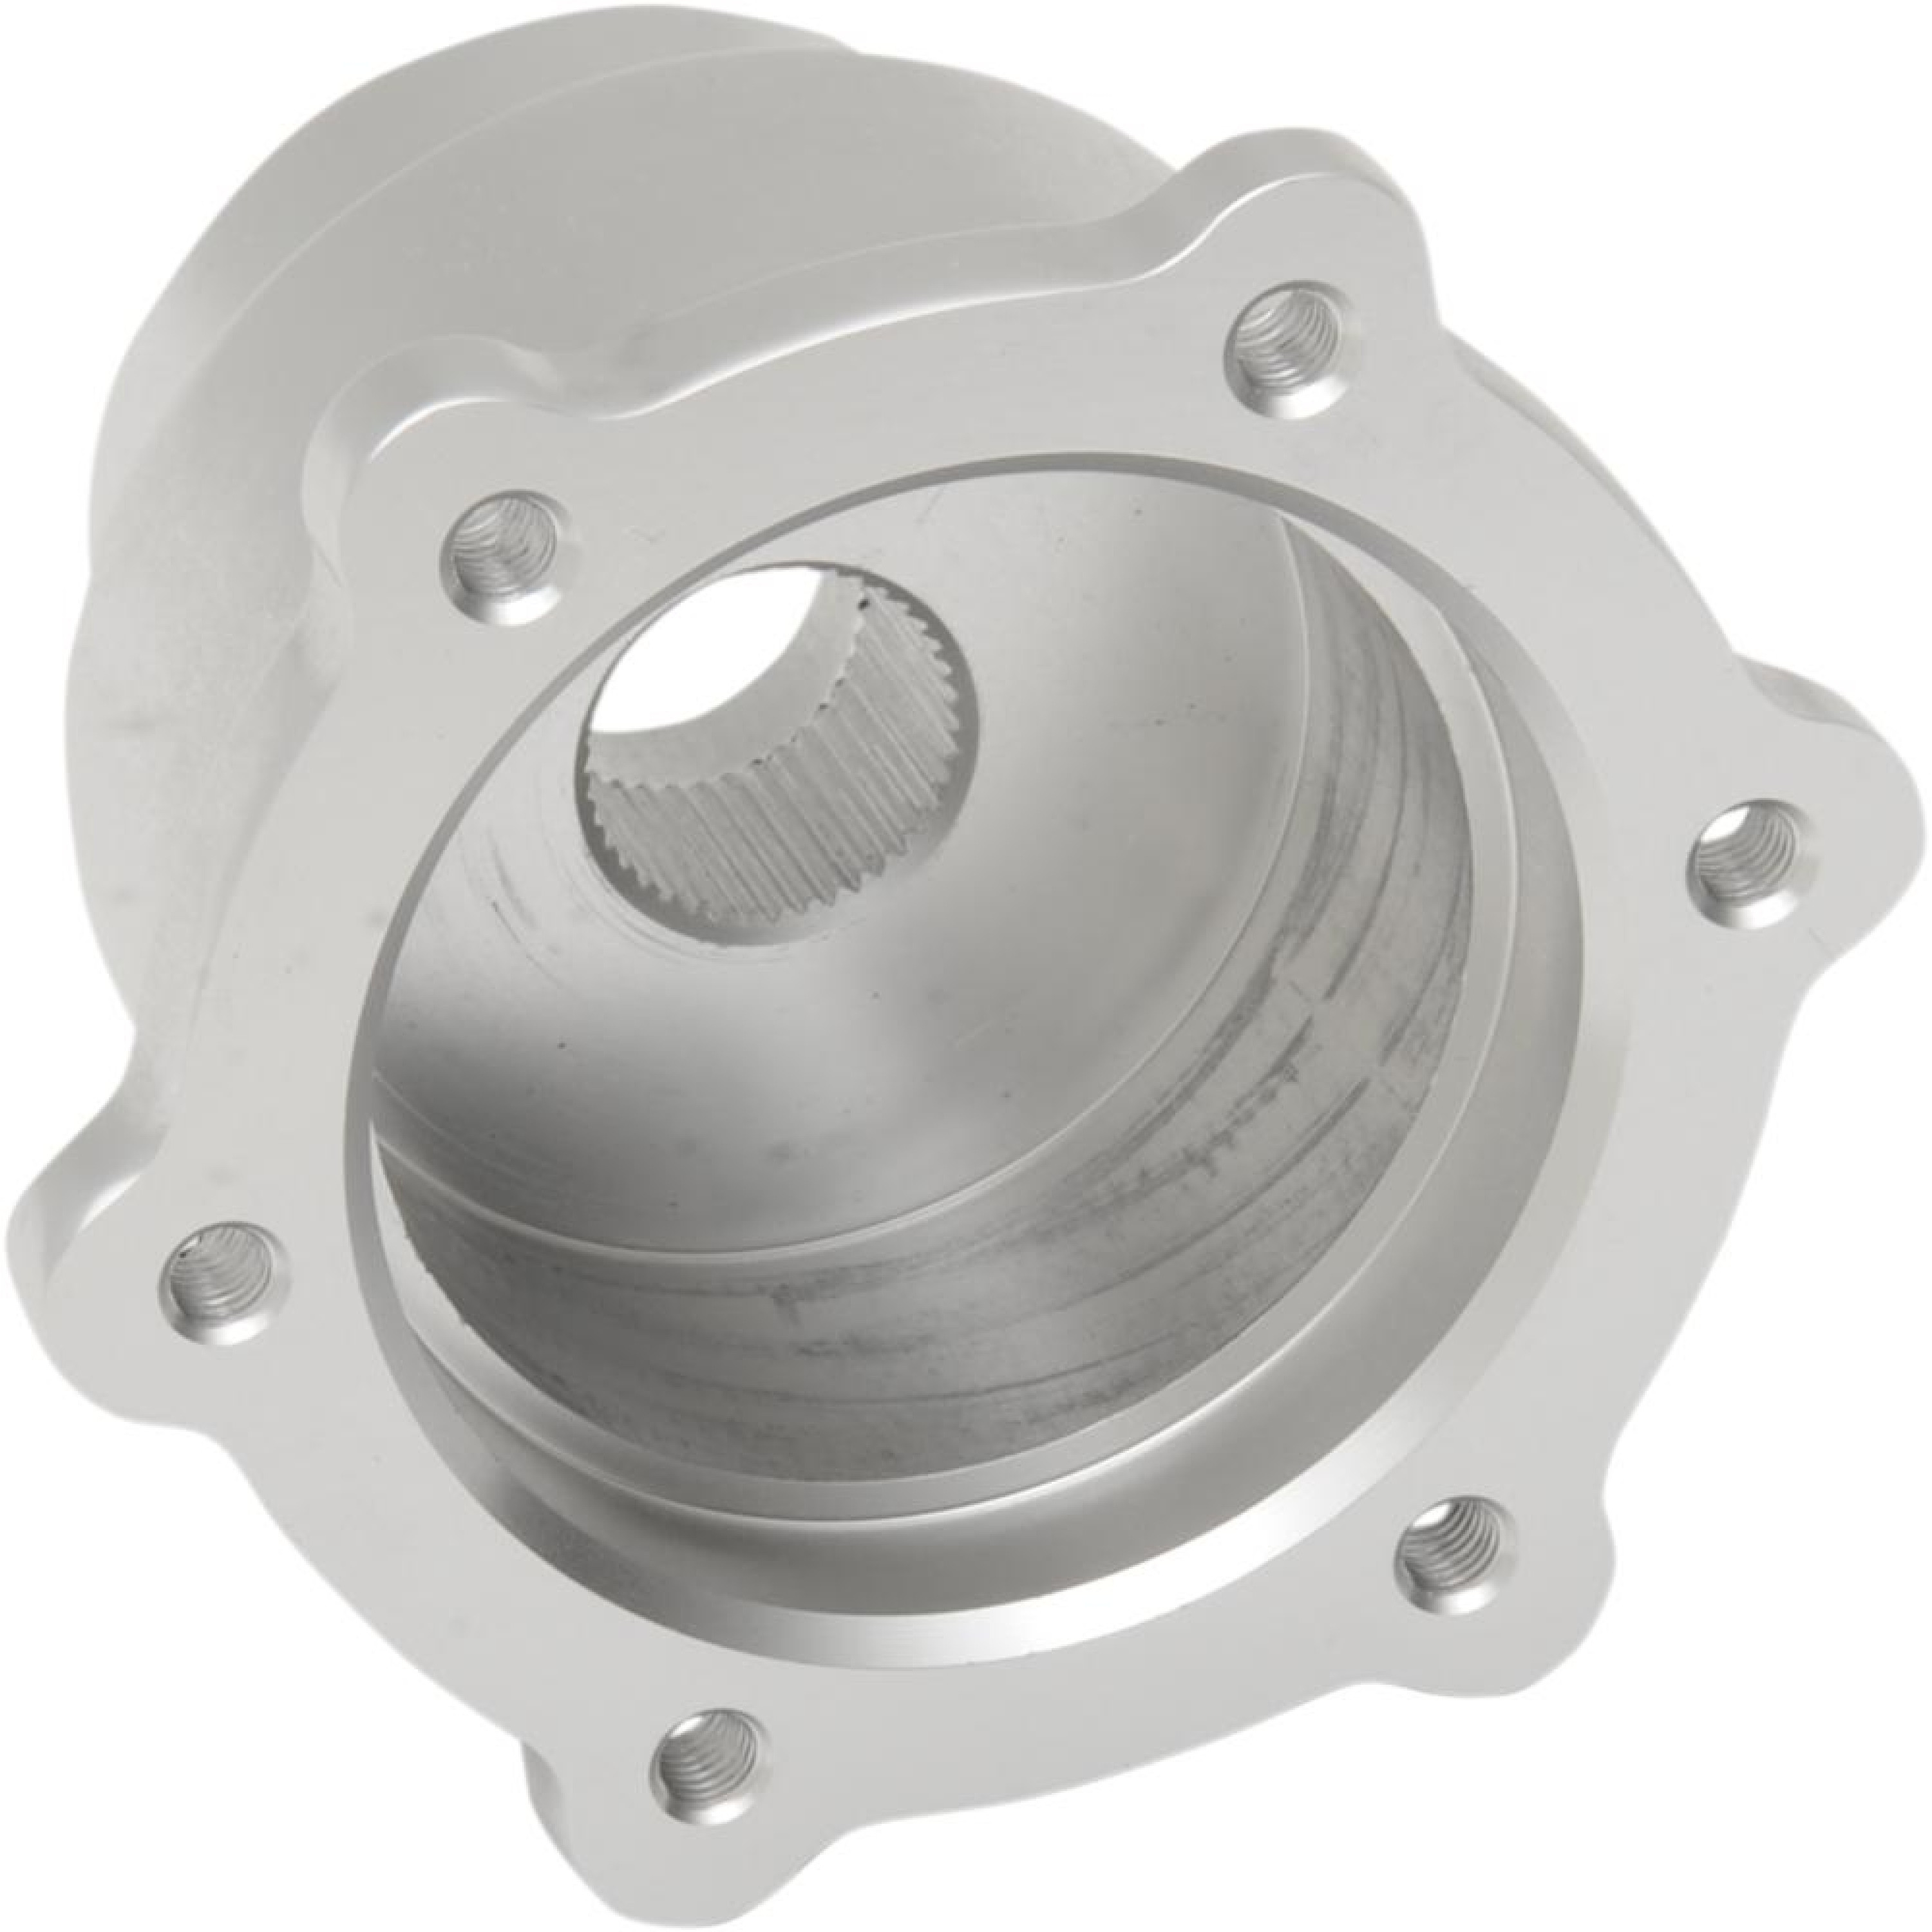 STEER WHEEL ADAPTER